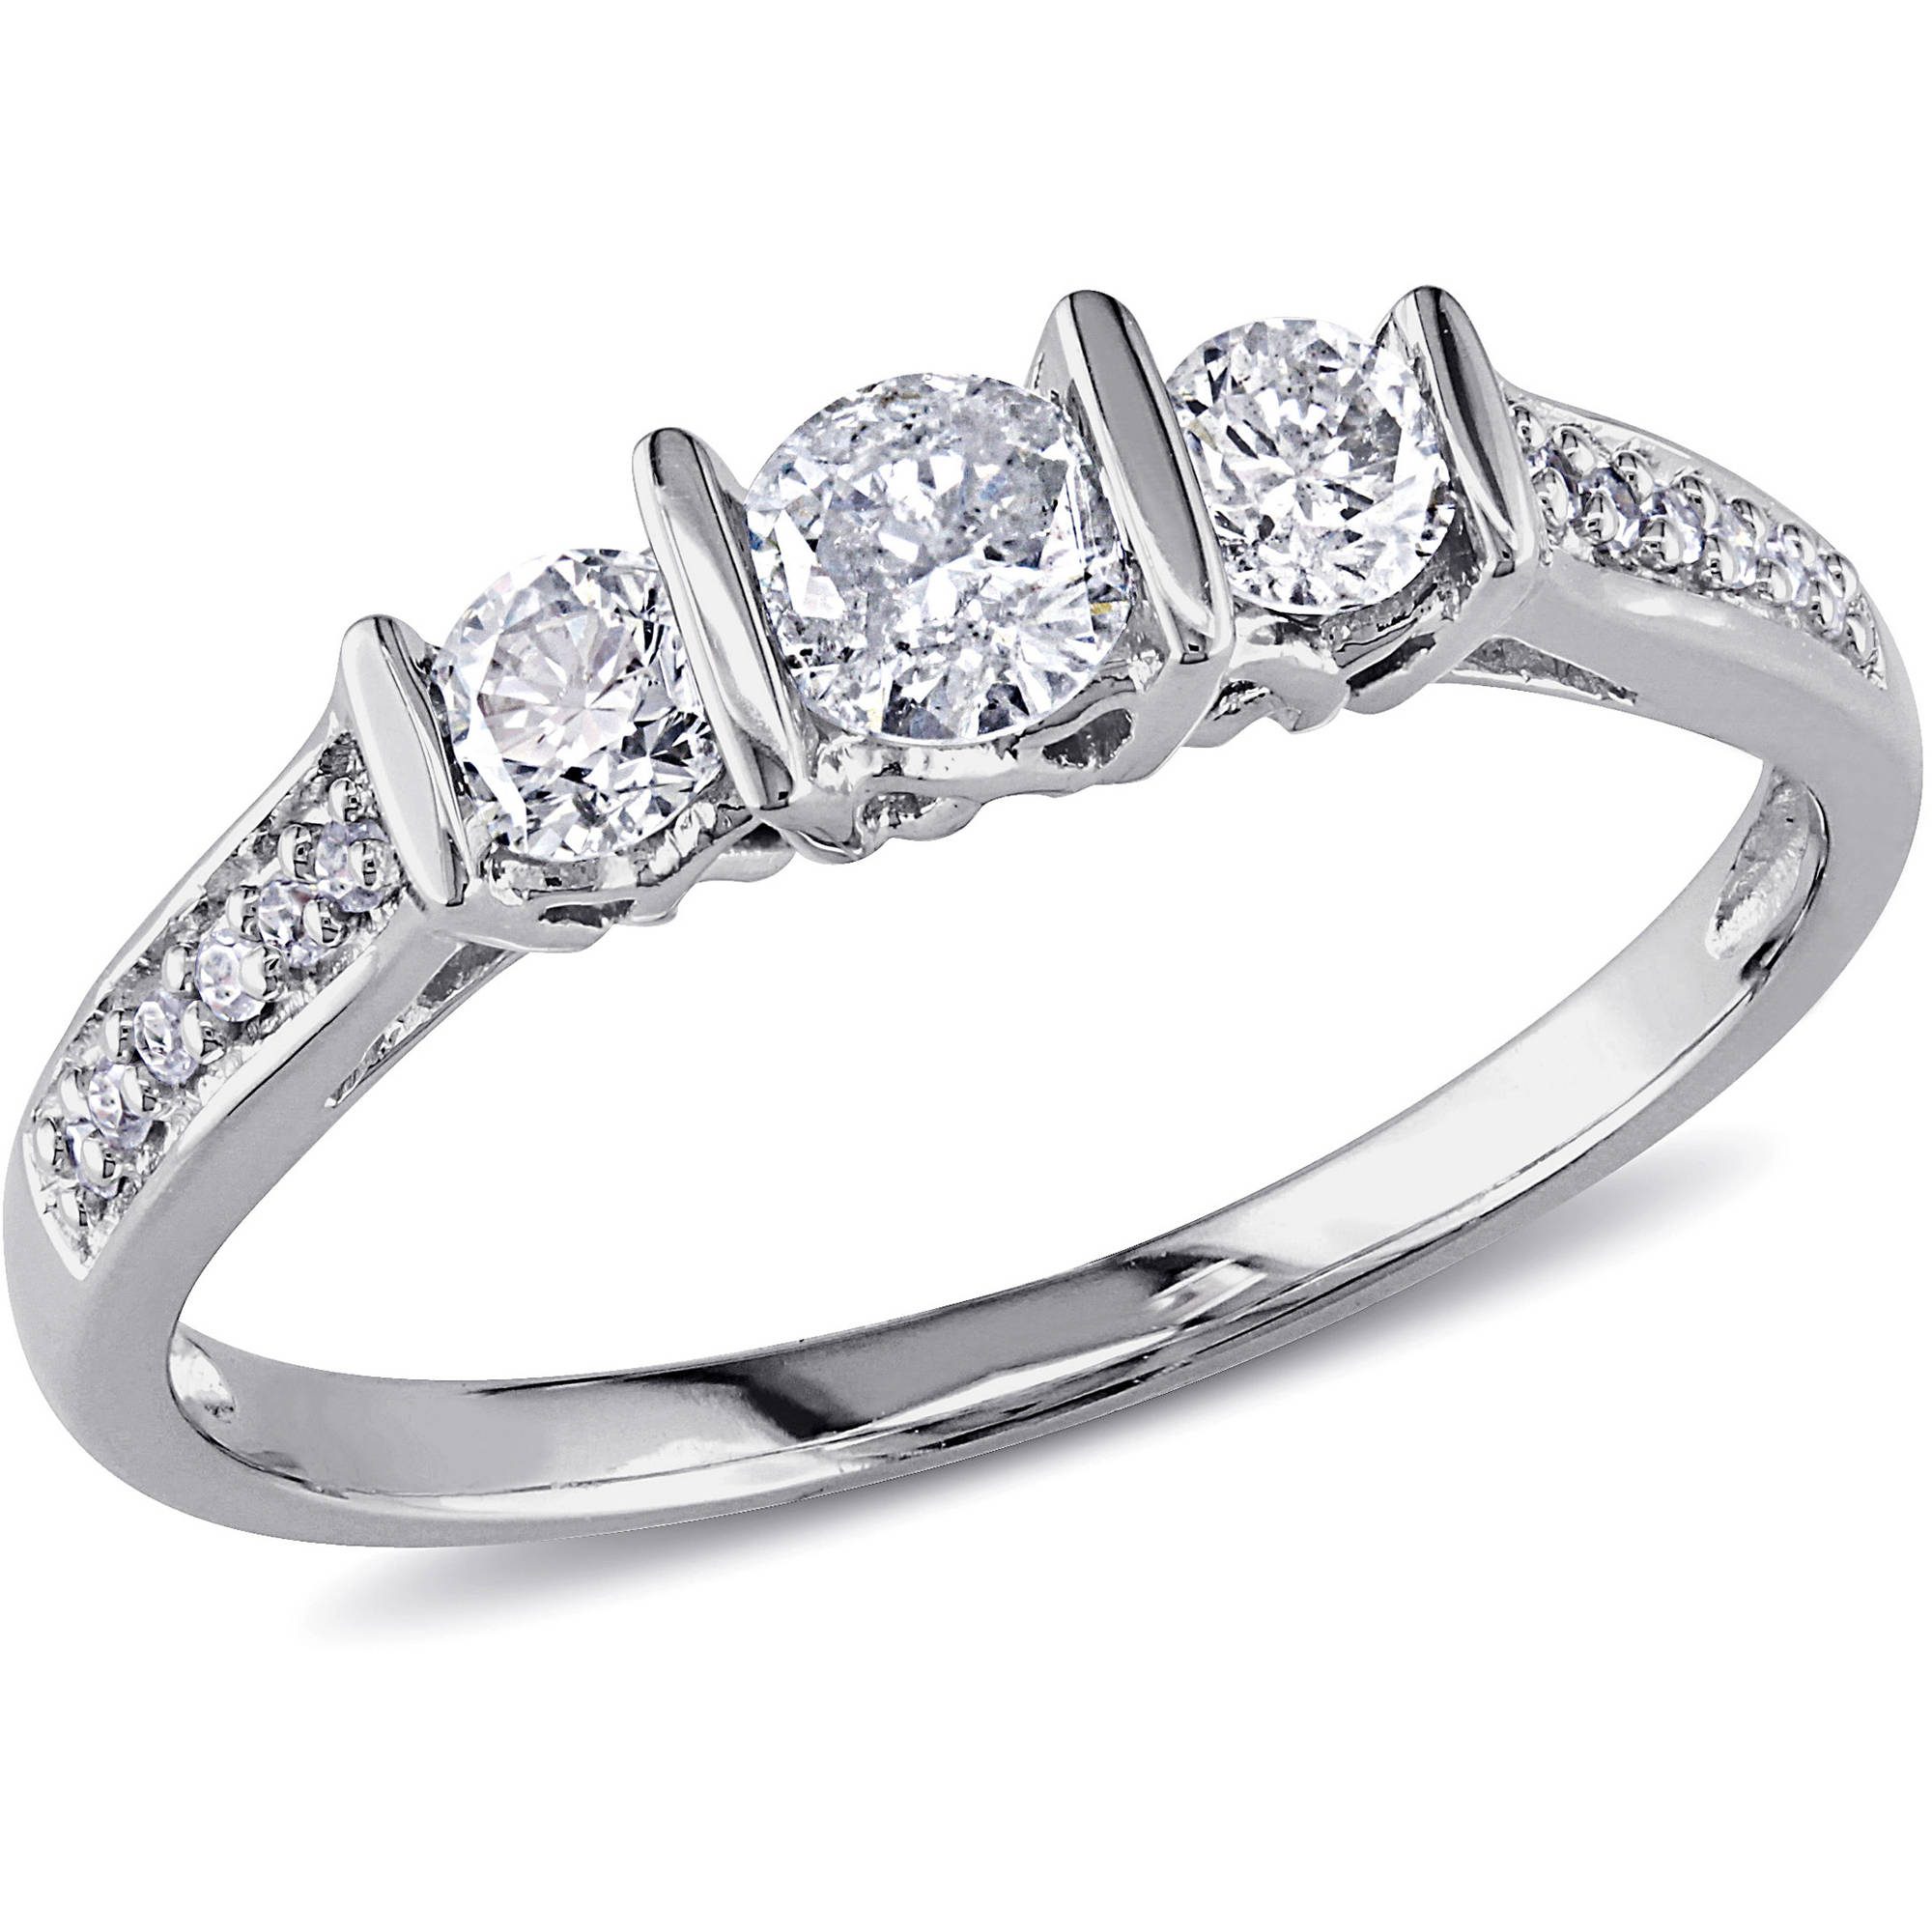 1/2 Carat T.W. Three-Stone Diamond Engagement Ring in 10kt White Gold